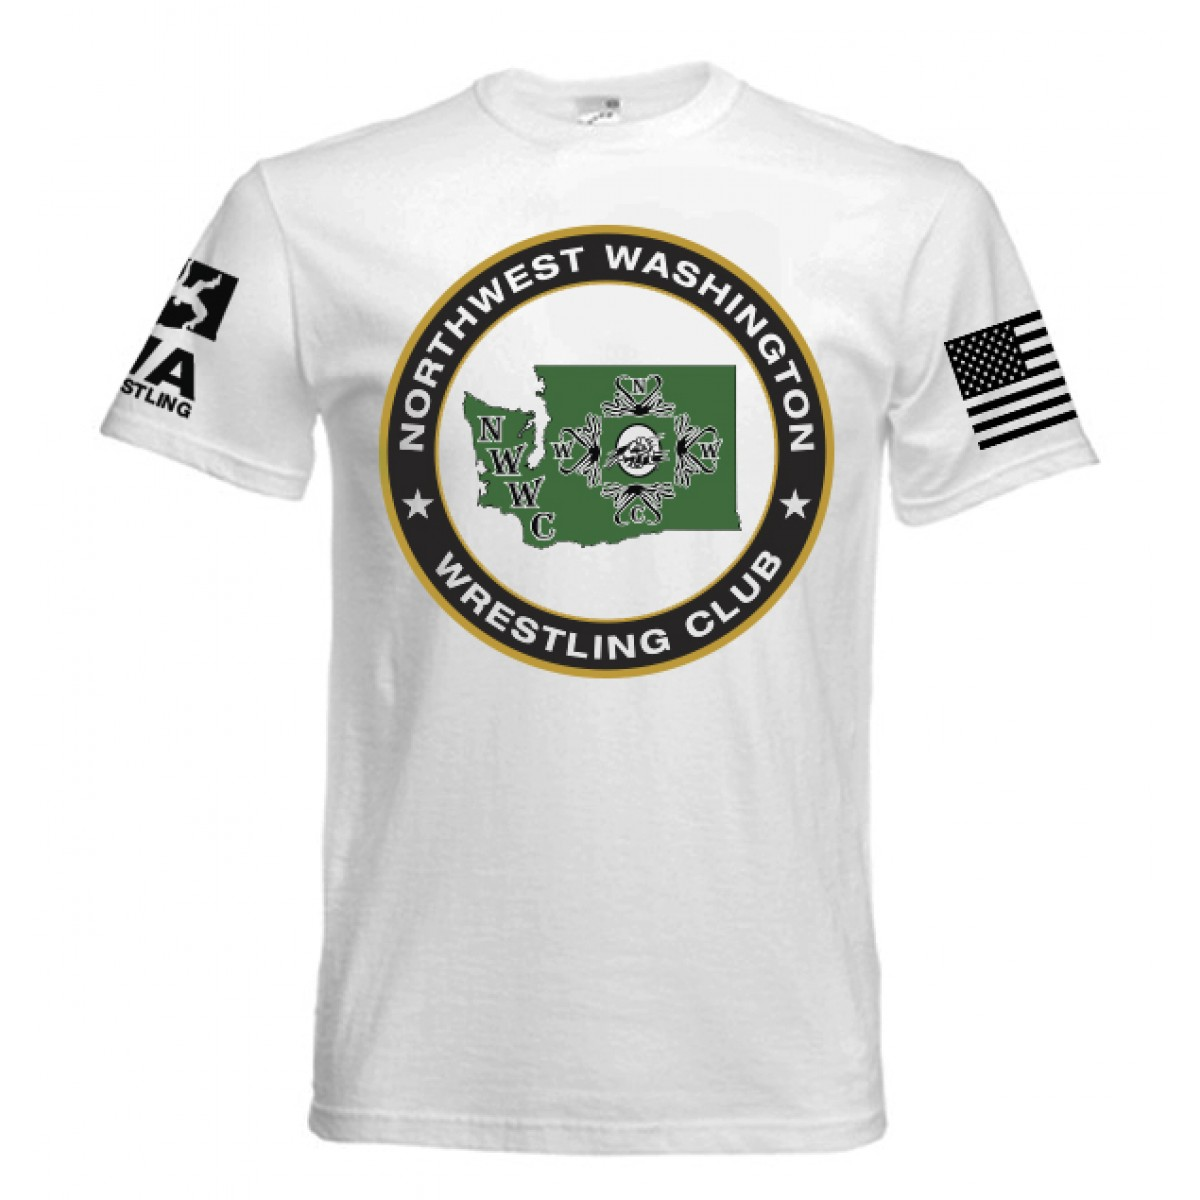 NWWC White T-shirt Green Logo-White-L